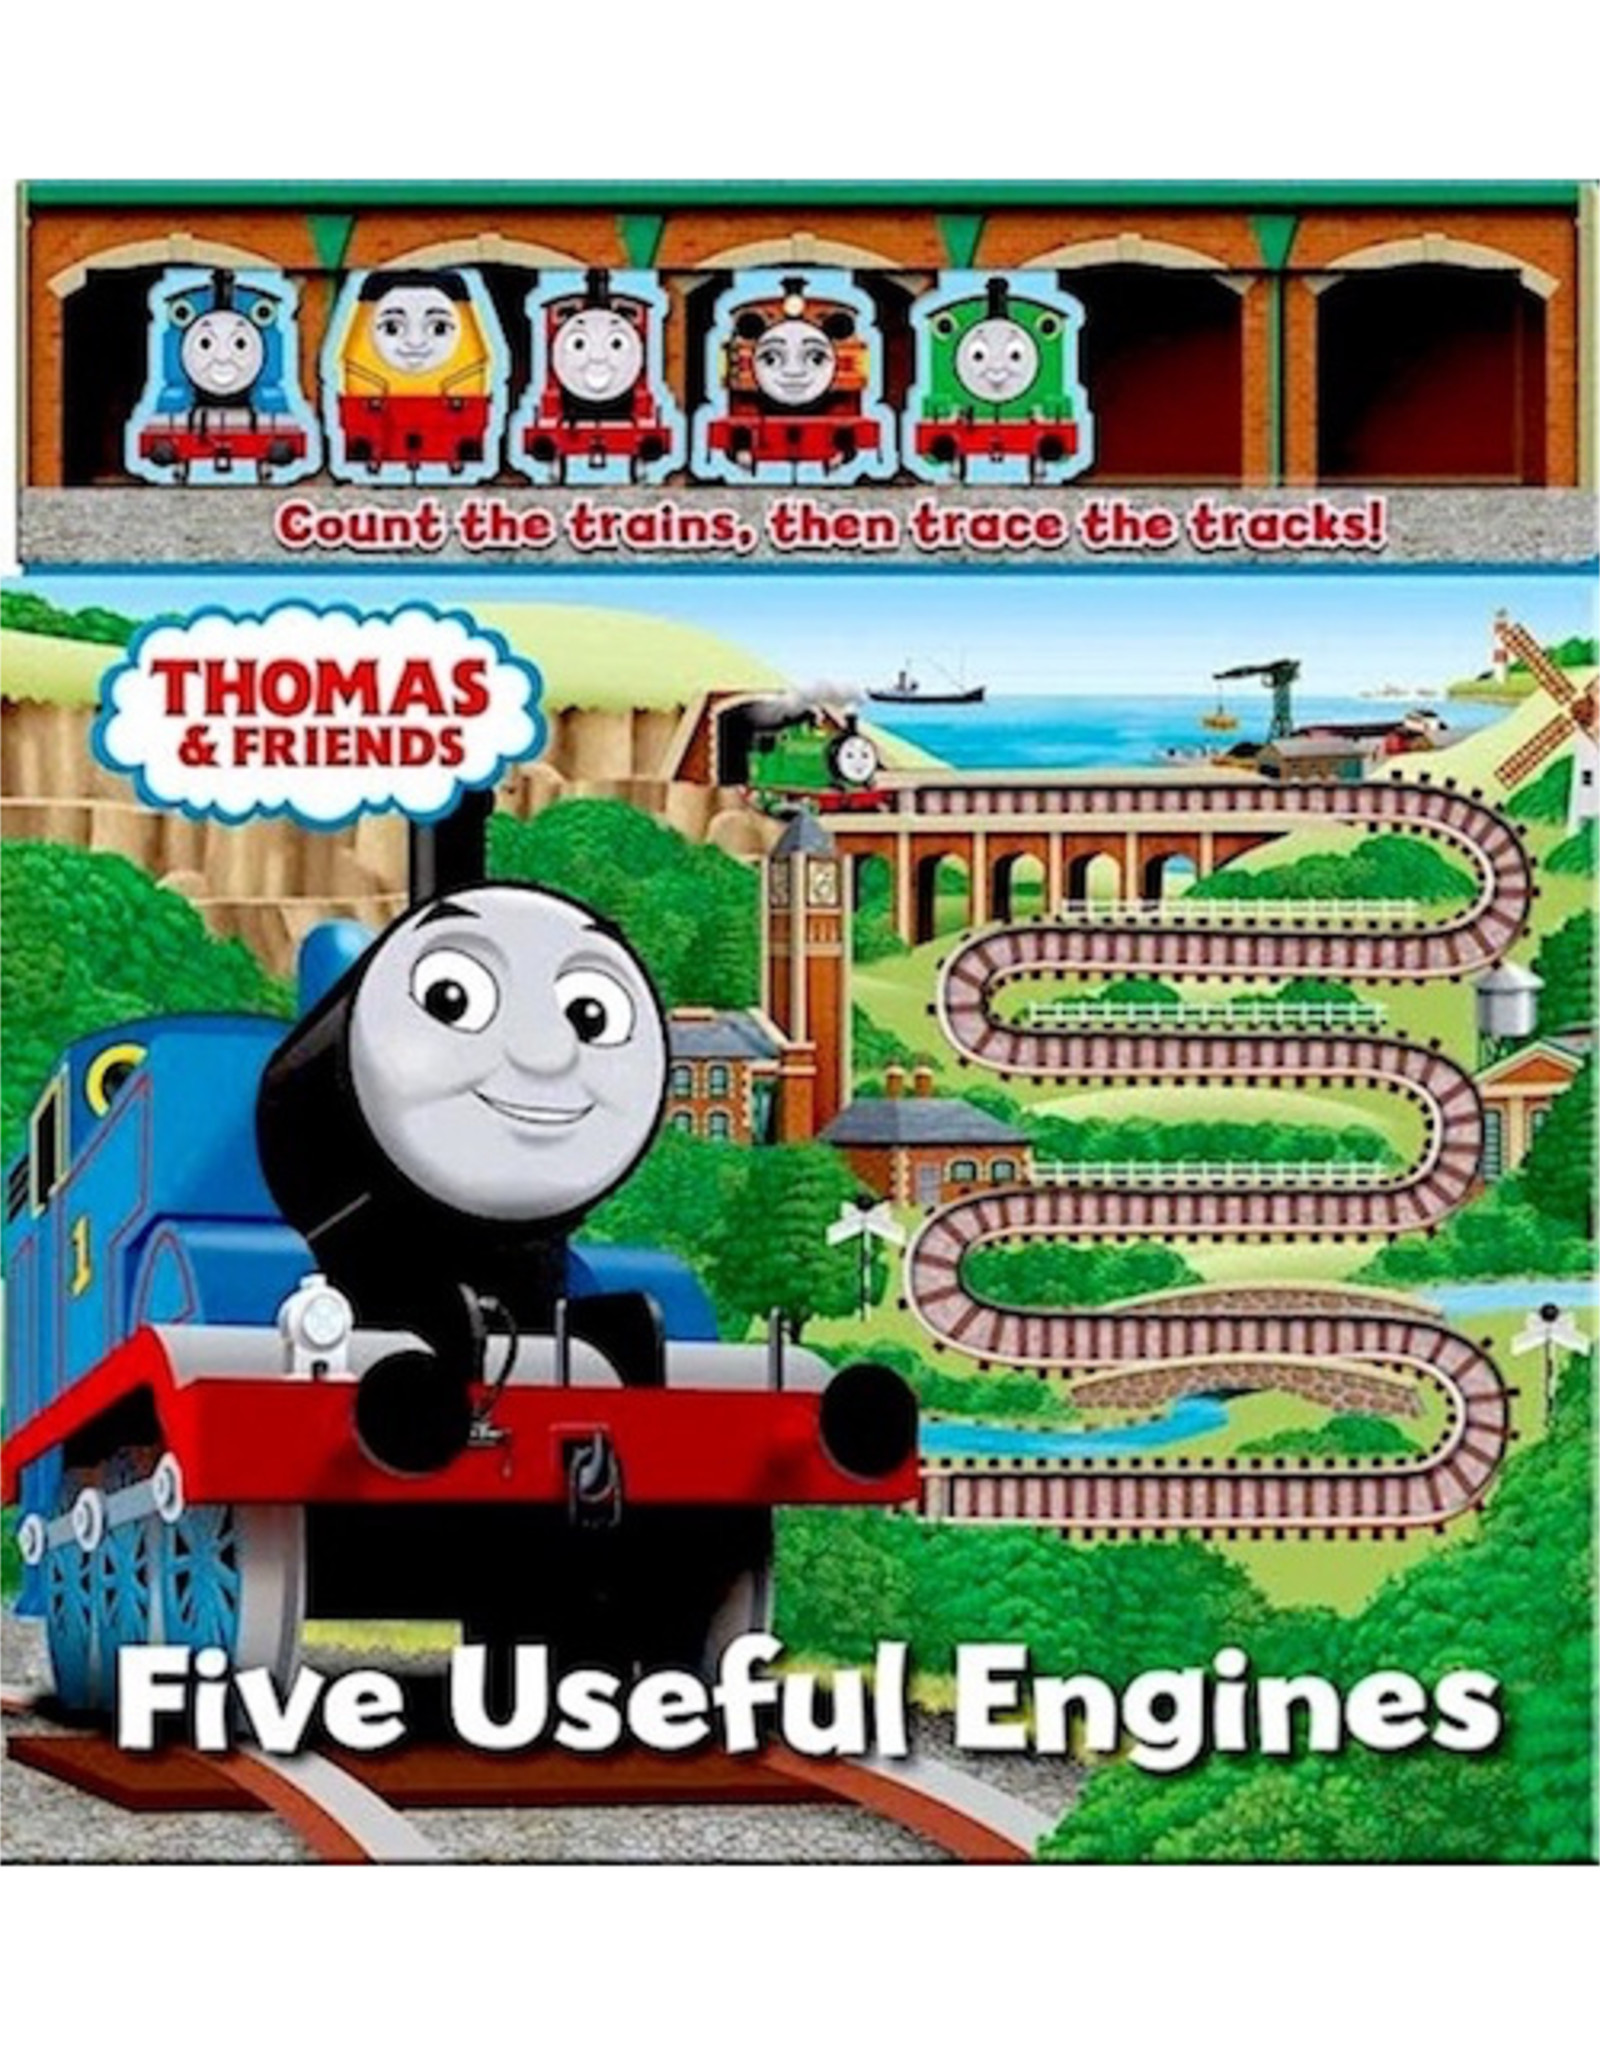 Thomas & Friends Five Useful Engines